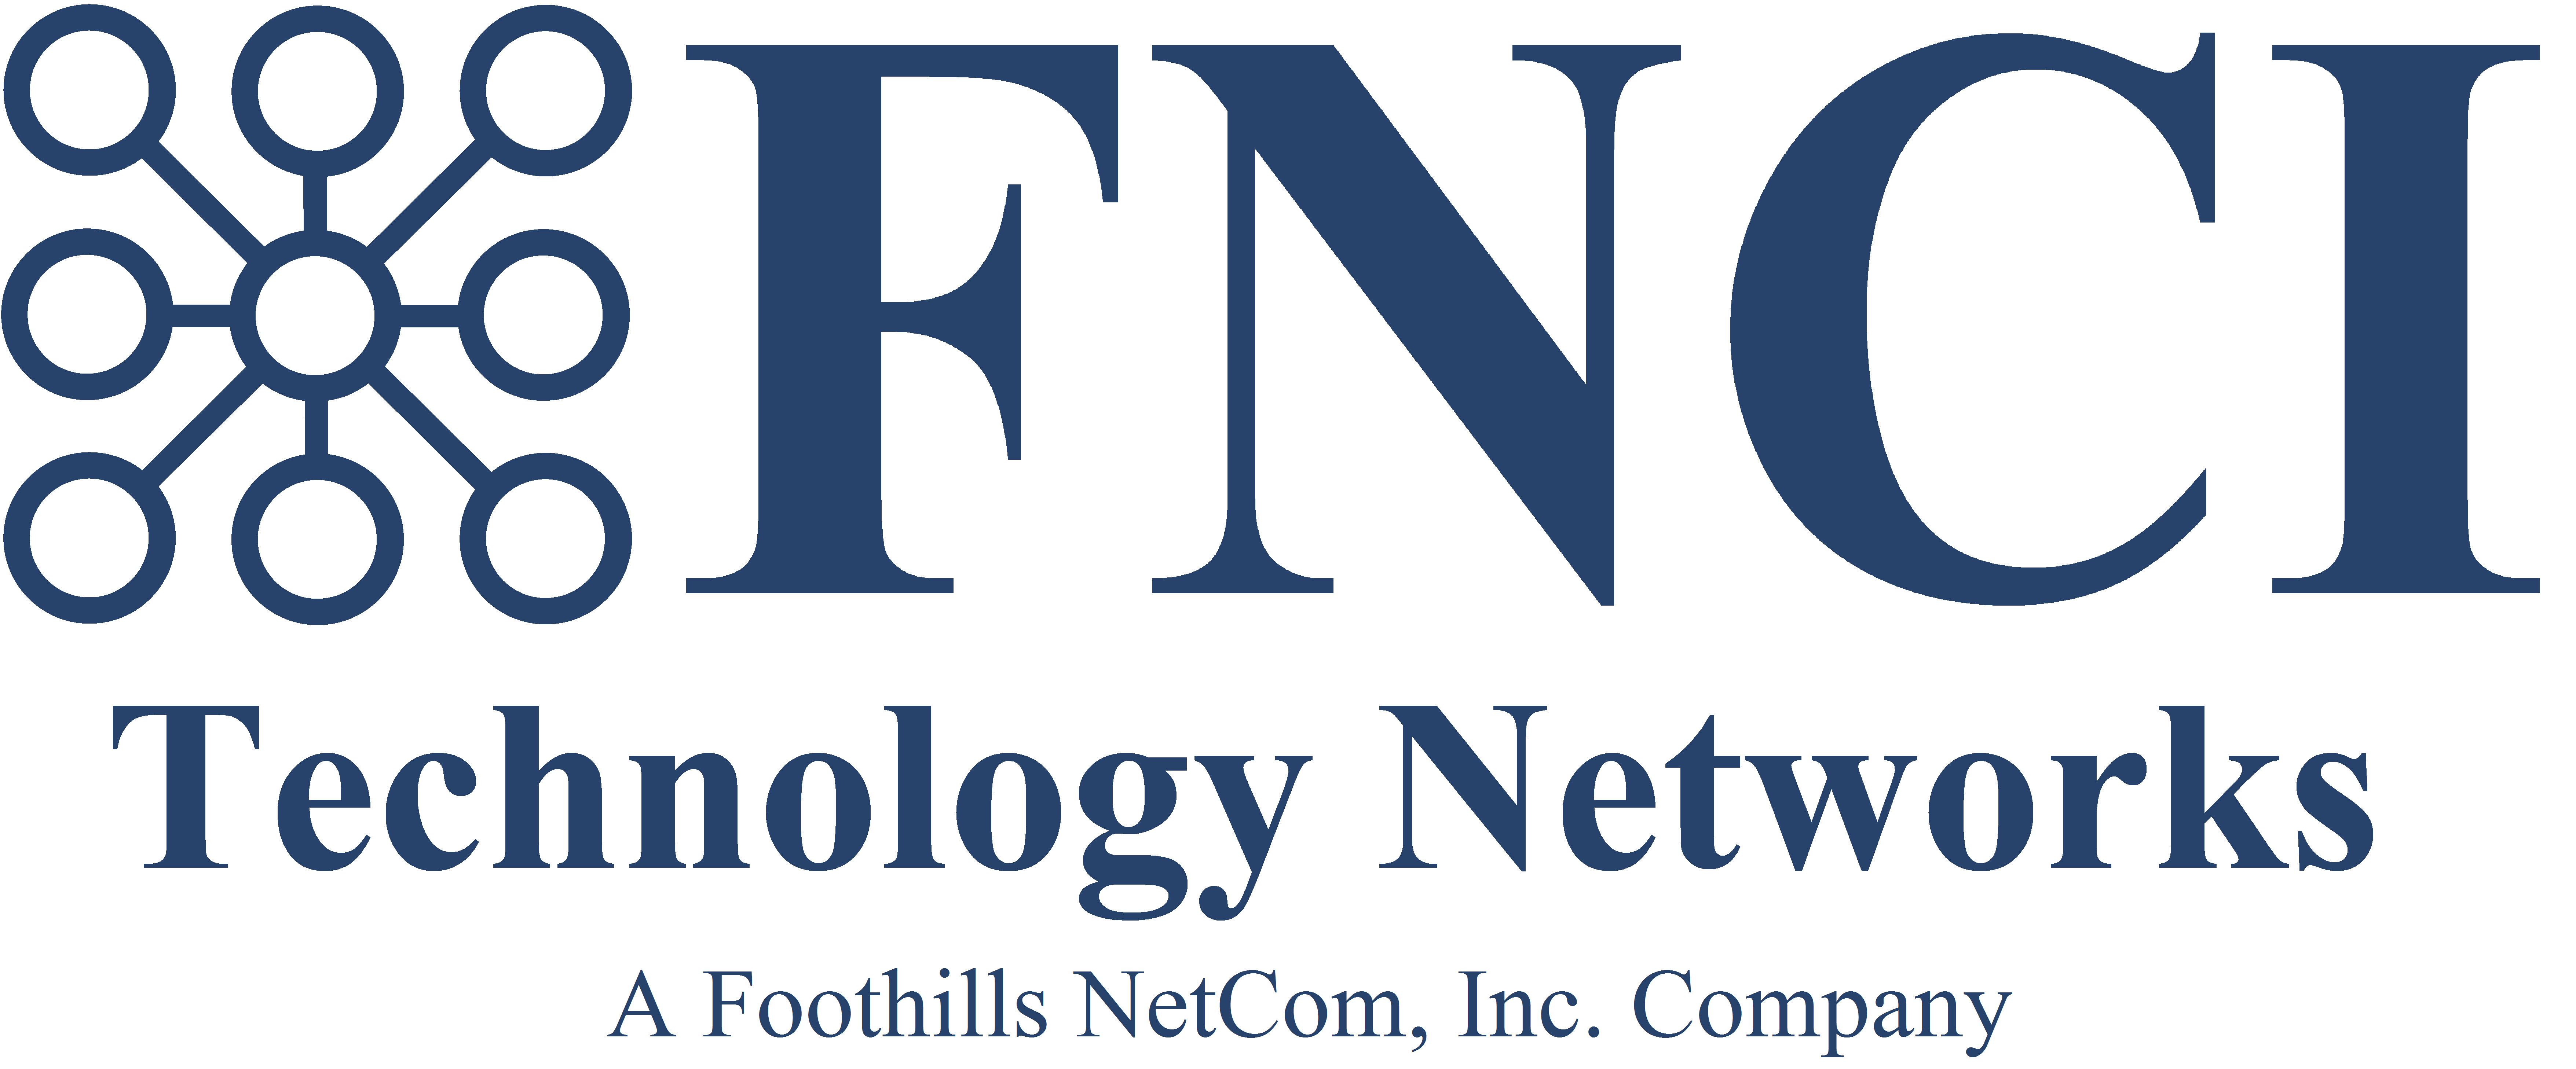 Foothills NetCom, Inc.